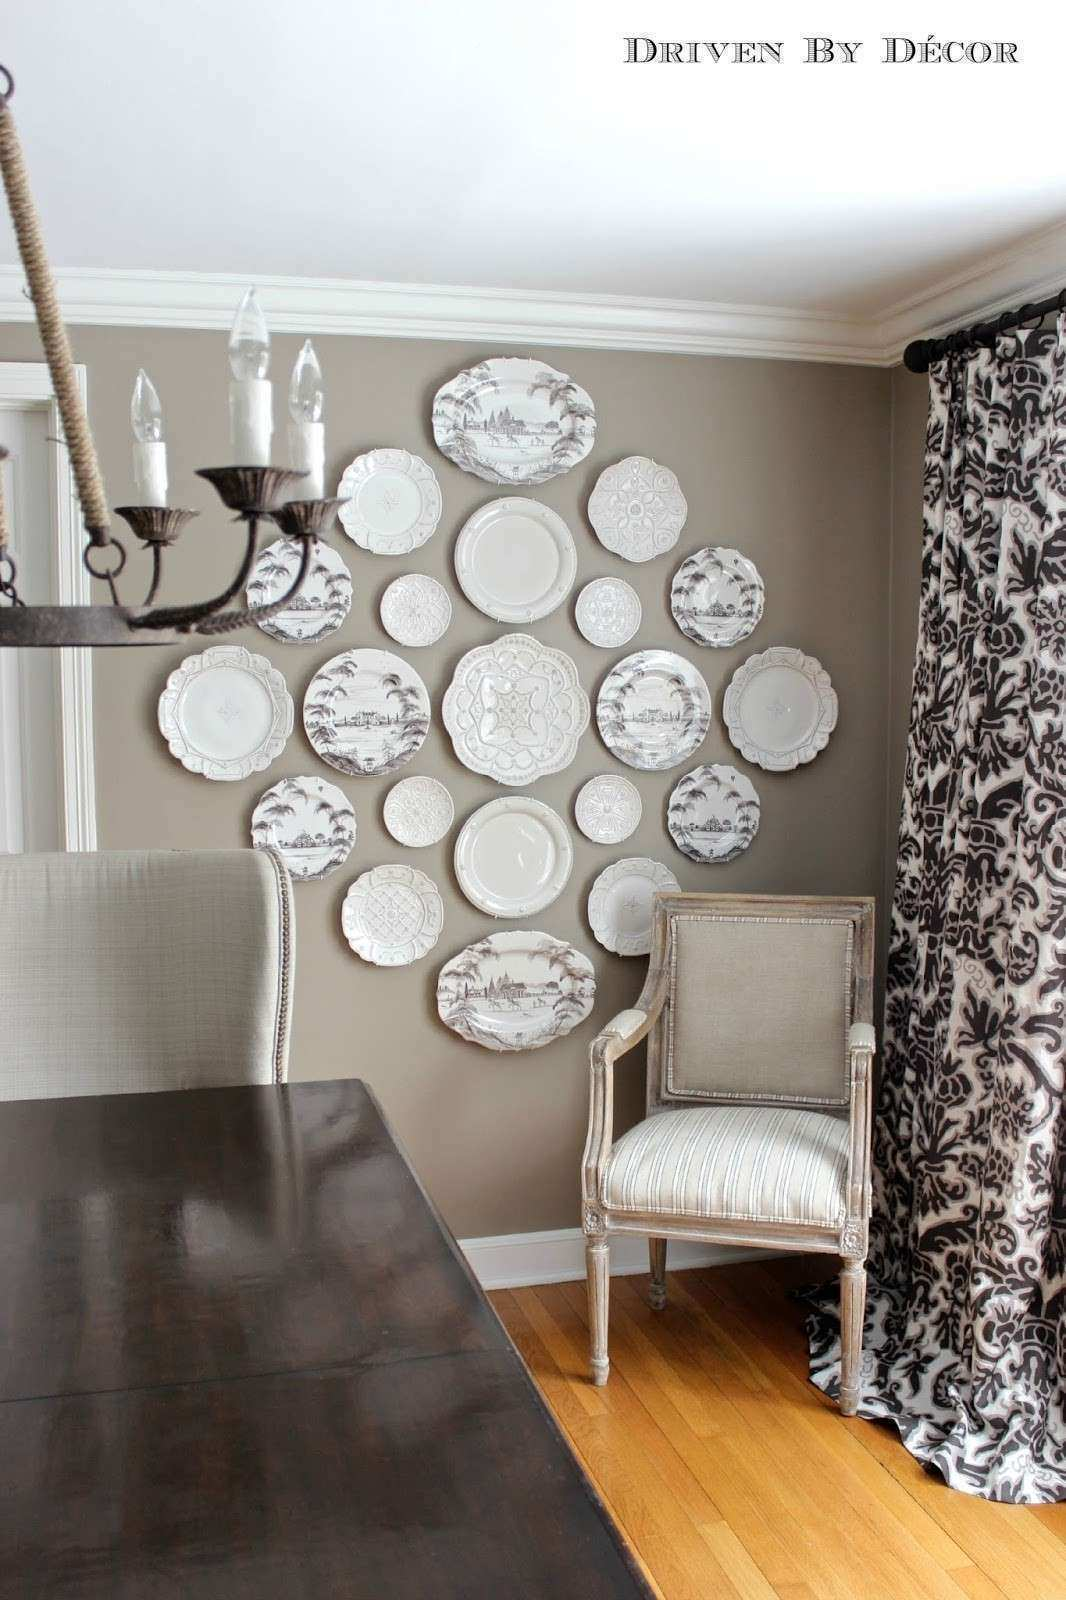 The Easy How to for Hanging Plates on the Wall